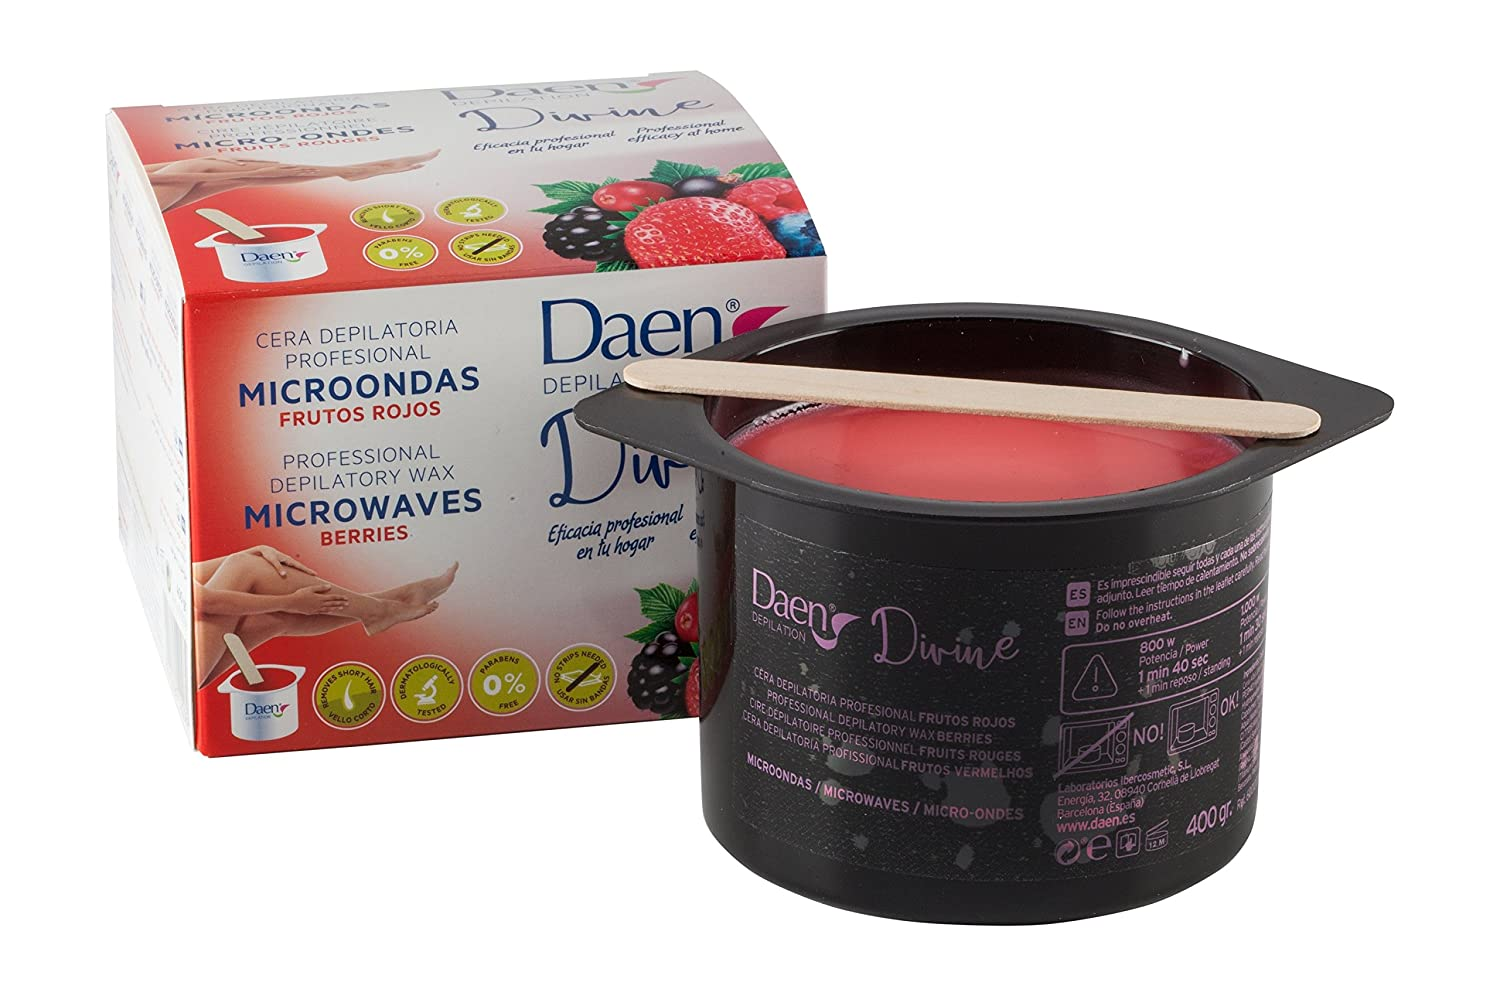 Daen 400 g Divine Berries Microwavable Wax by Daen: Amazon.es: Salud y cuidado personal